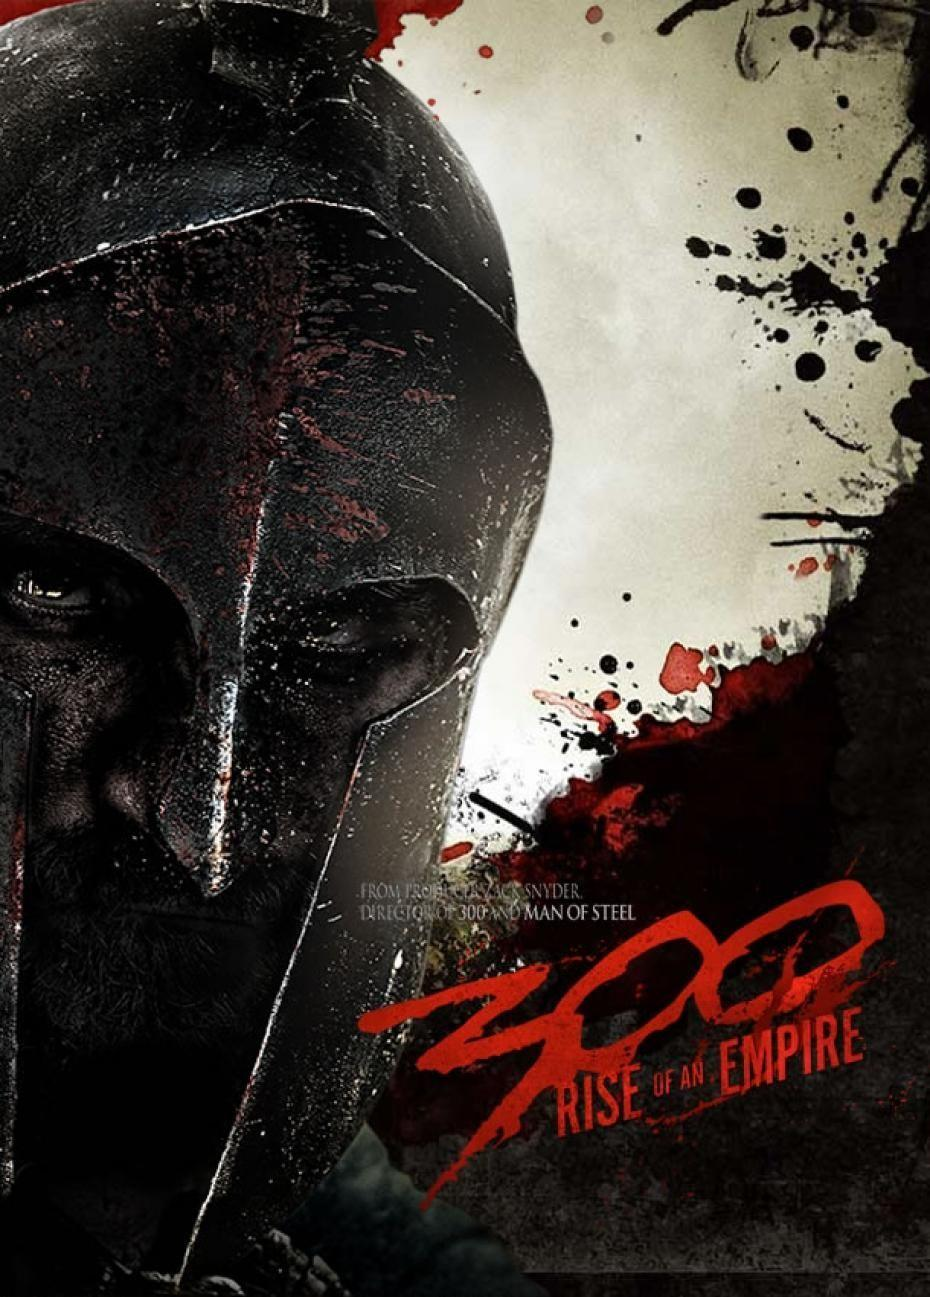 300: rise of an empire wallpapers - wallpaper cave